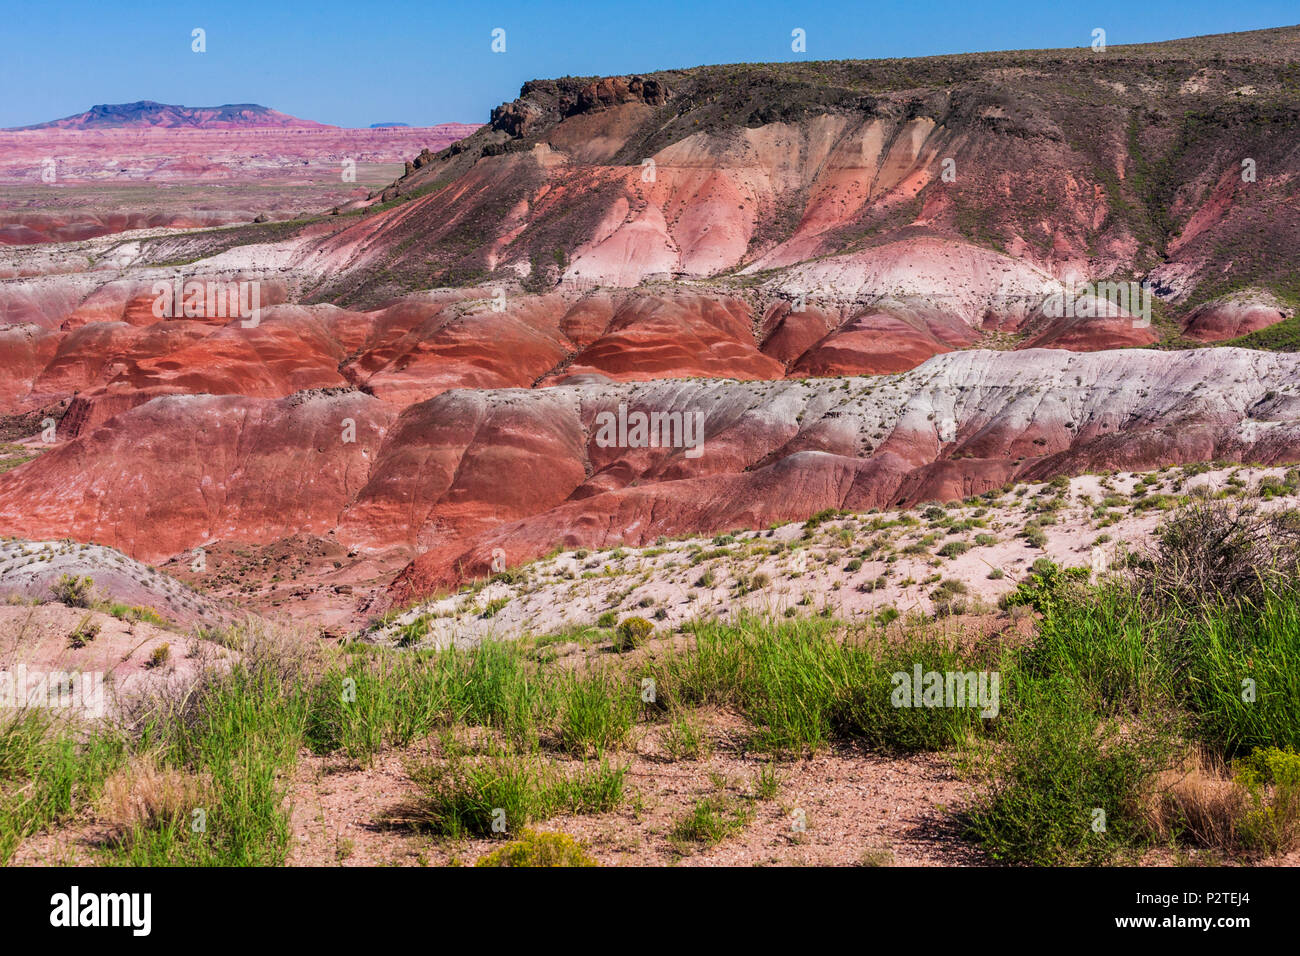 Painted Desert landscapes in the Petrified Forest National Park in Arizona. Established as a National Monument in 1906 by President Theodore Roosevelt - Stock Image